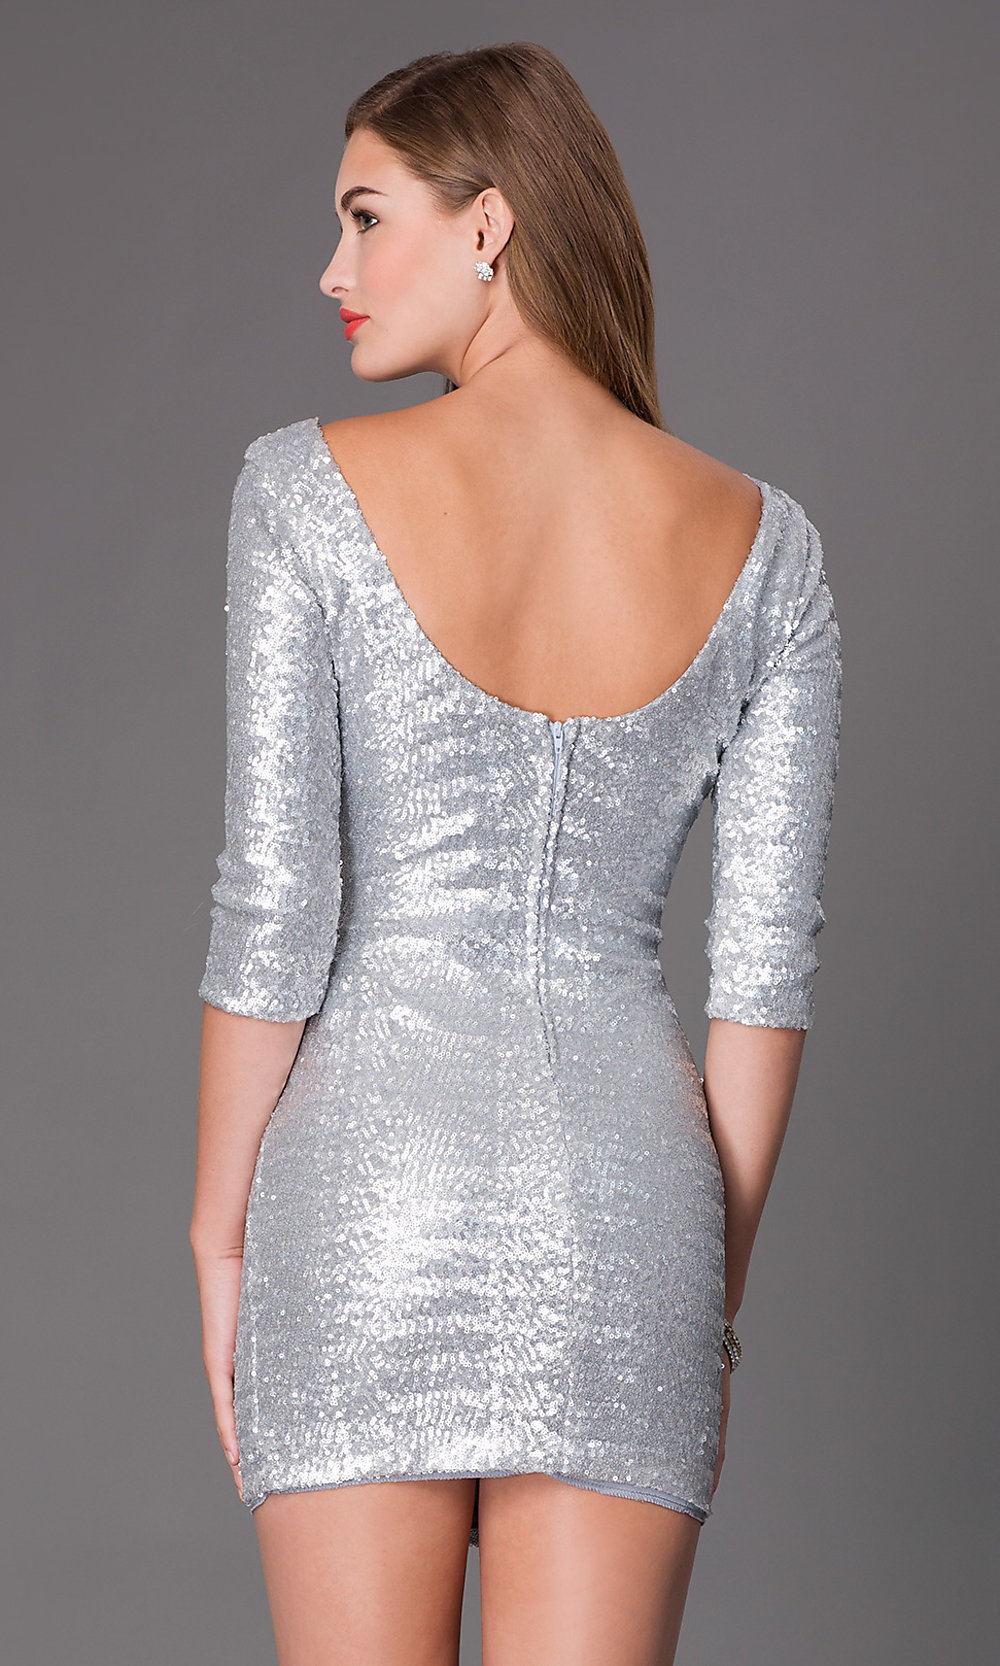 Short Silver Sequin 3/4 Sleeve Dress - PromGirl